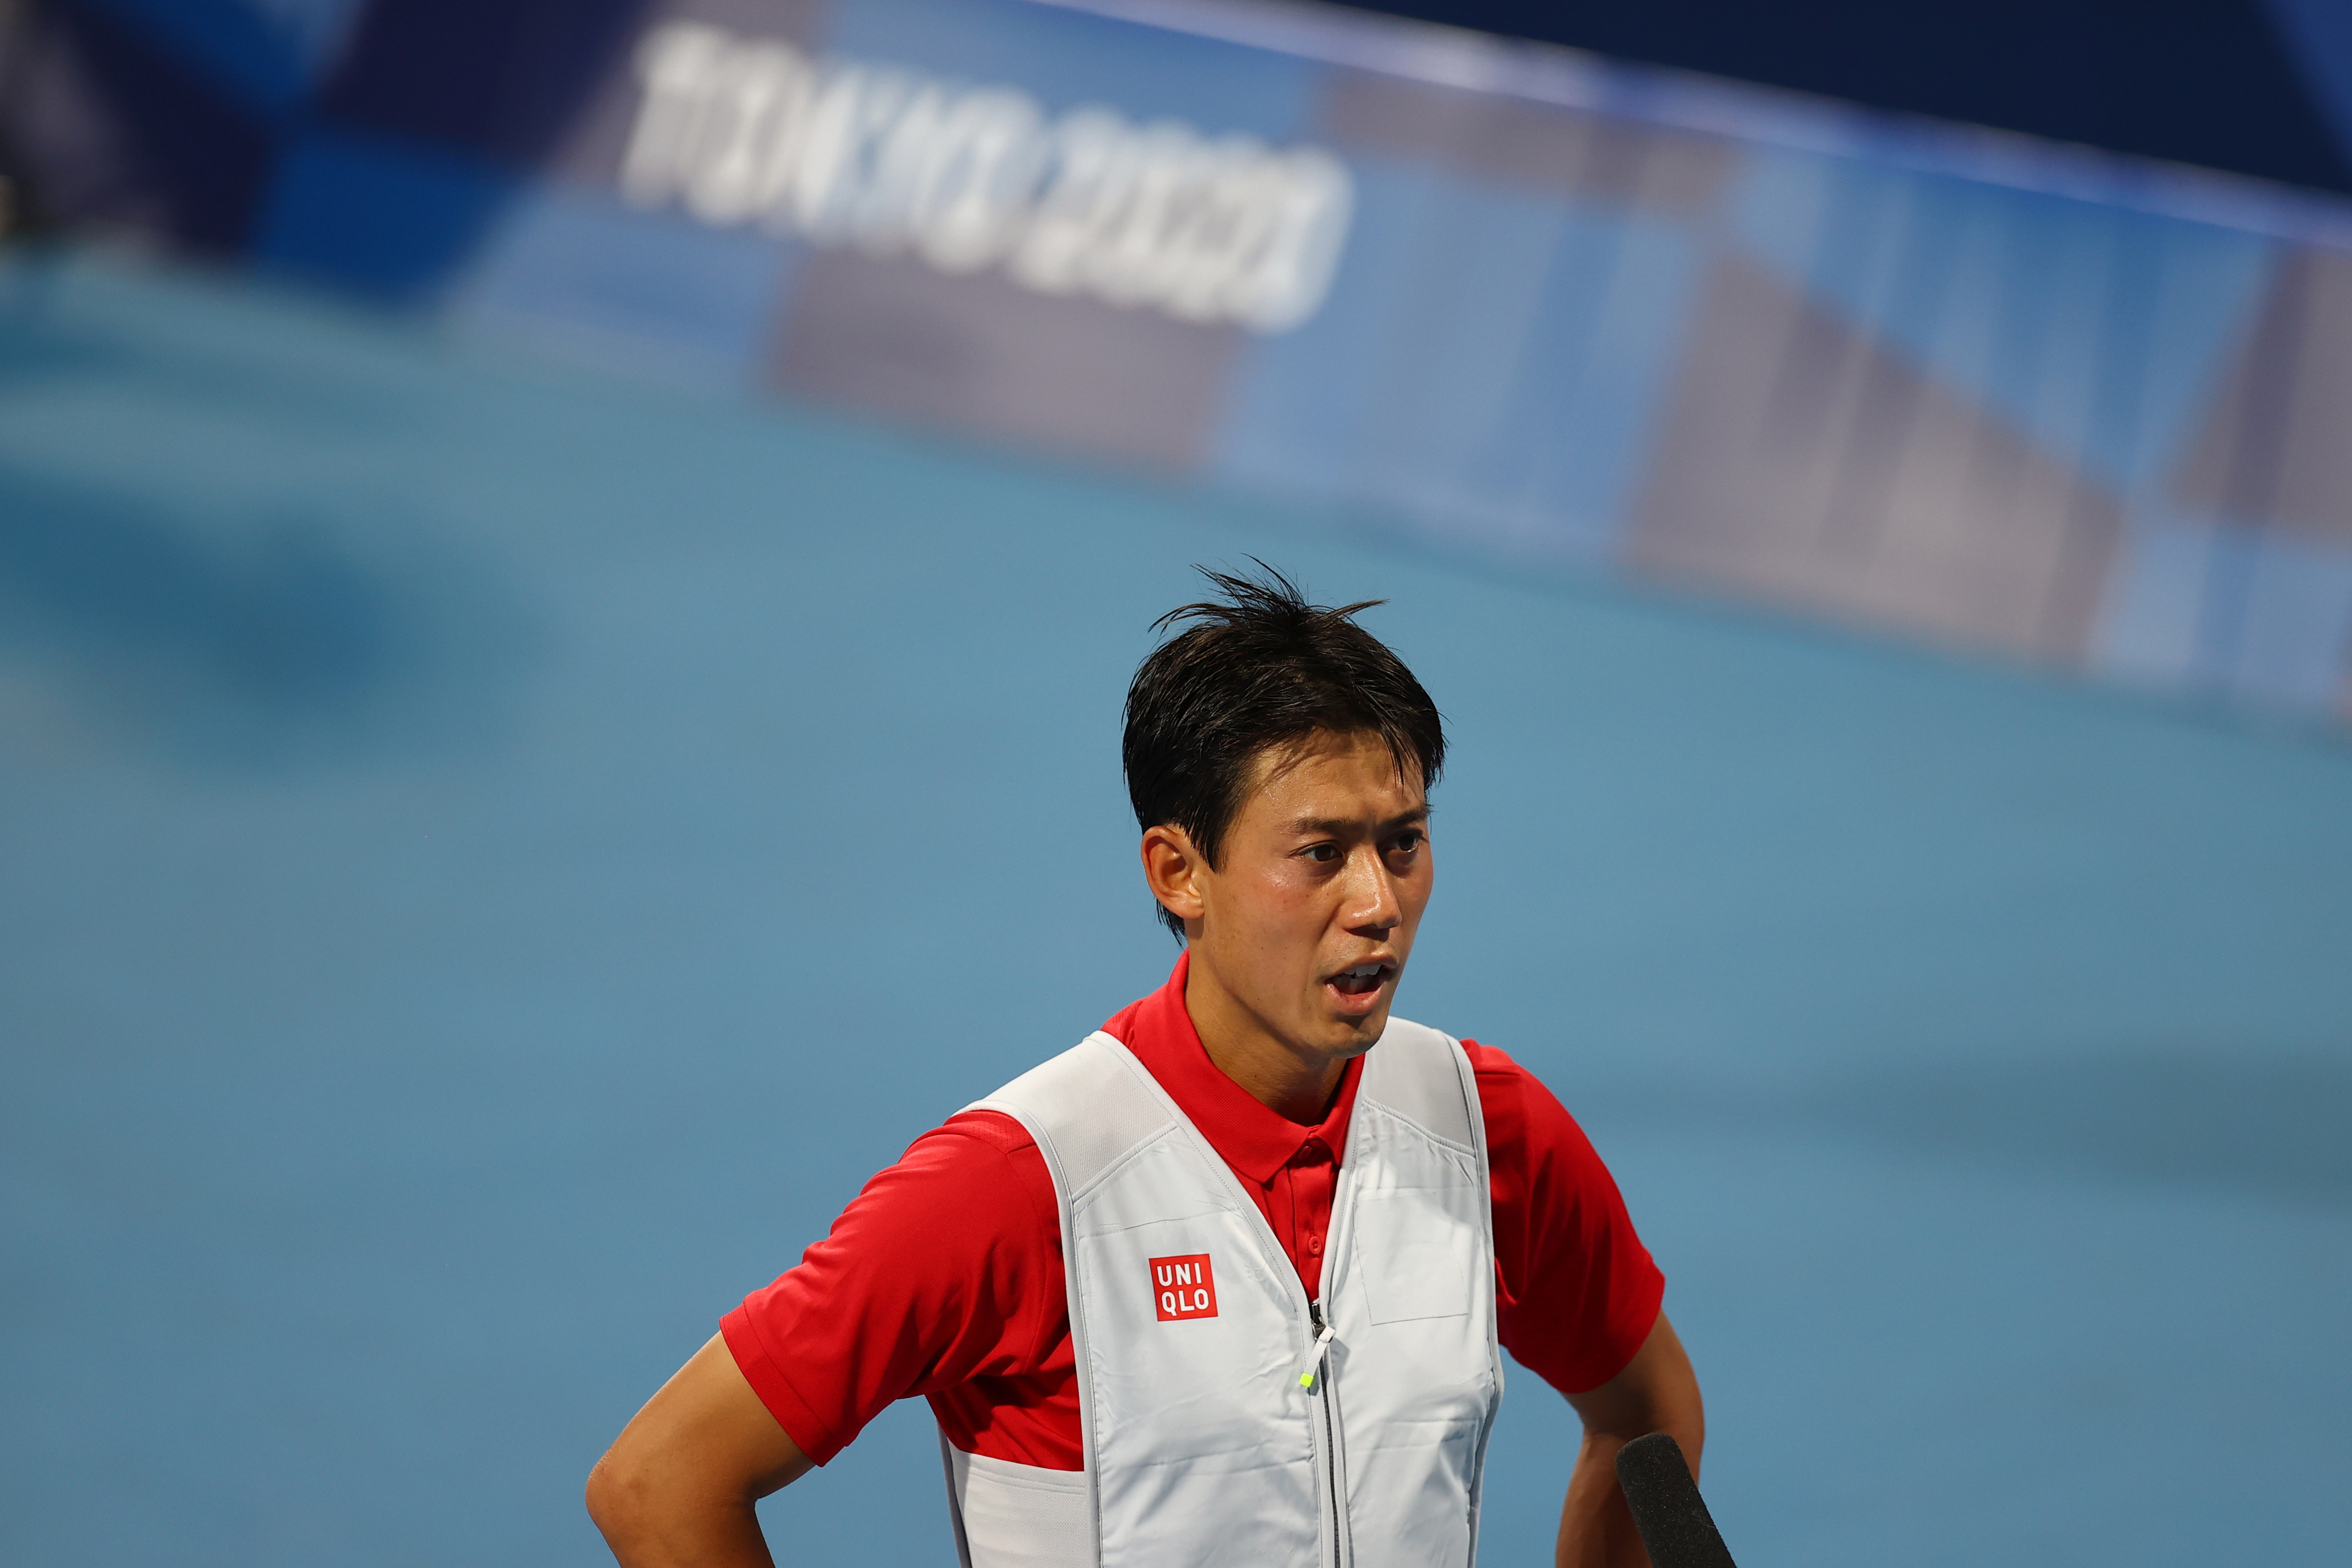 Tokyo 2020 Olympics - Tennis - Men's Singles - Round 1 - Ariake Tennis Park - Tokyo, Japan - July 25, 2021. Kei Nishikori of Japan talks to media after winning his first round match against Andrey Rublev of the Russian Olympic Committee REUTERS/Edgar Su